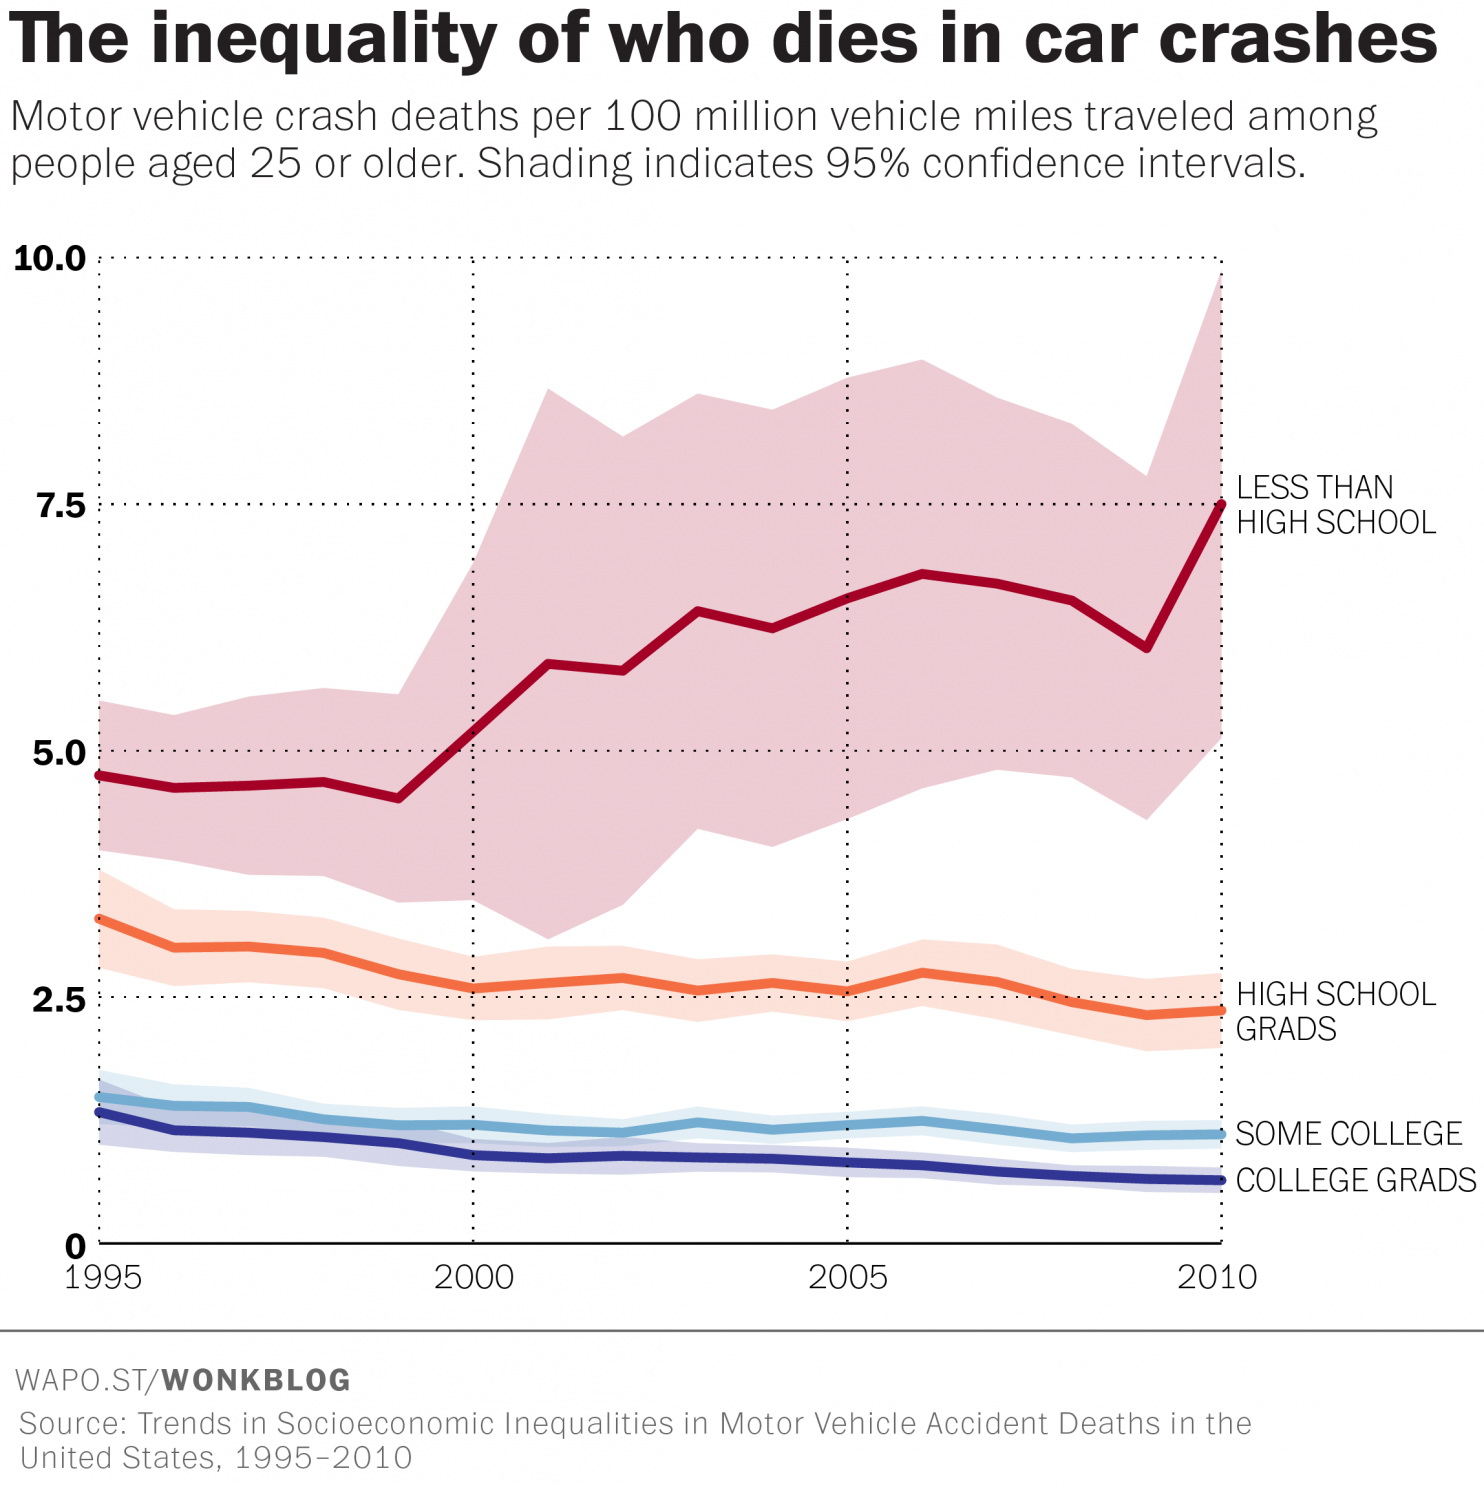 Traveling by car is getting more dangerous for the least educated American adults